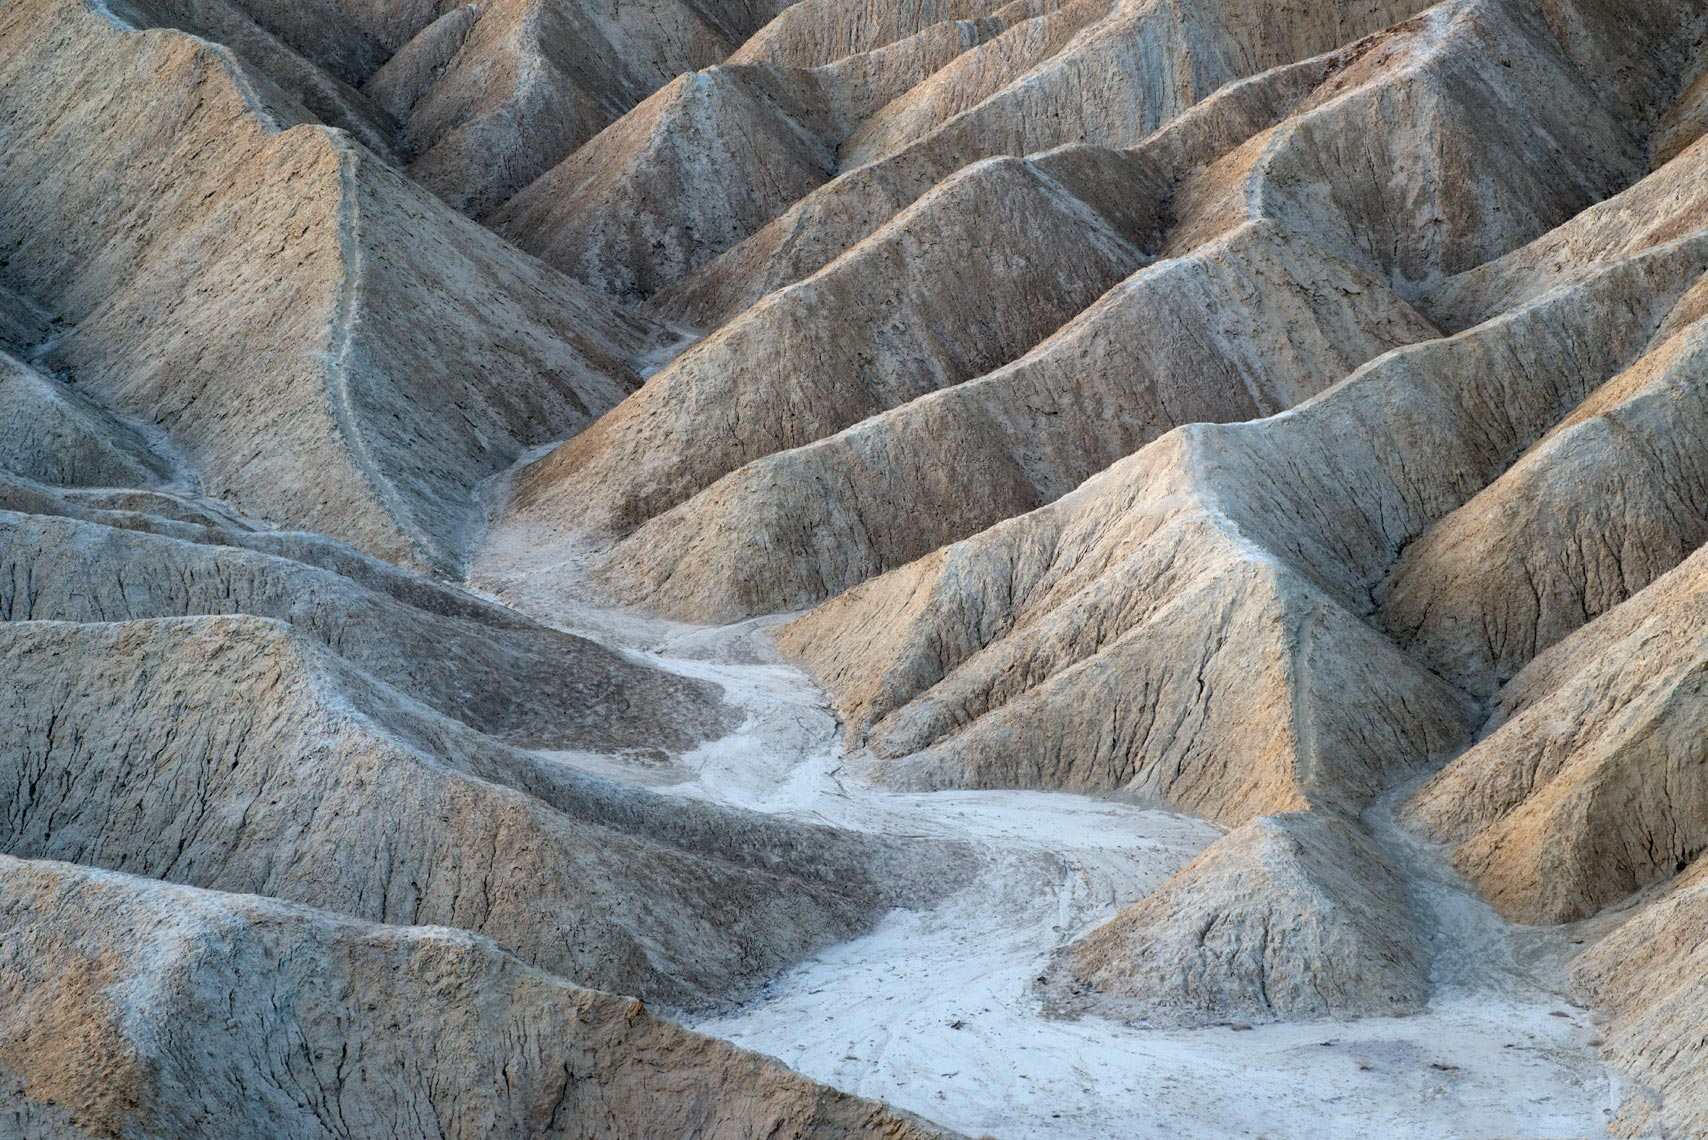 The Badlands, Death Valley National Park, California